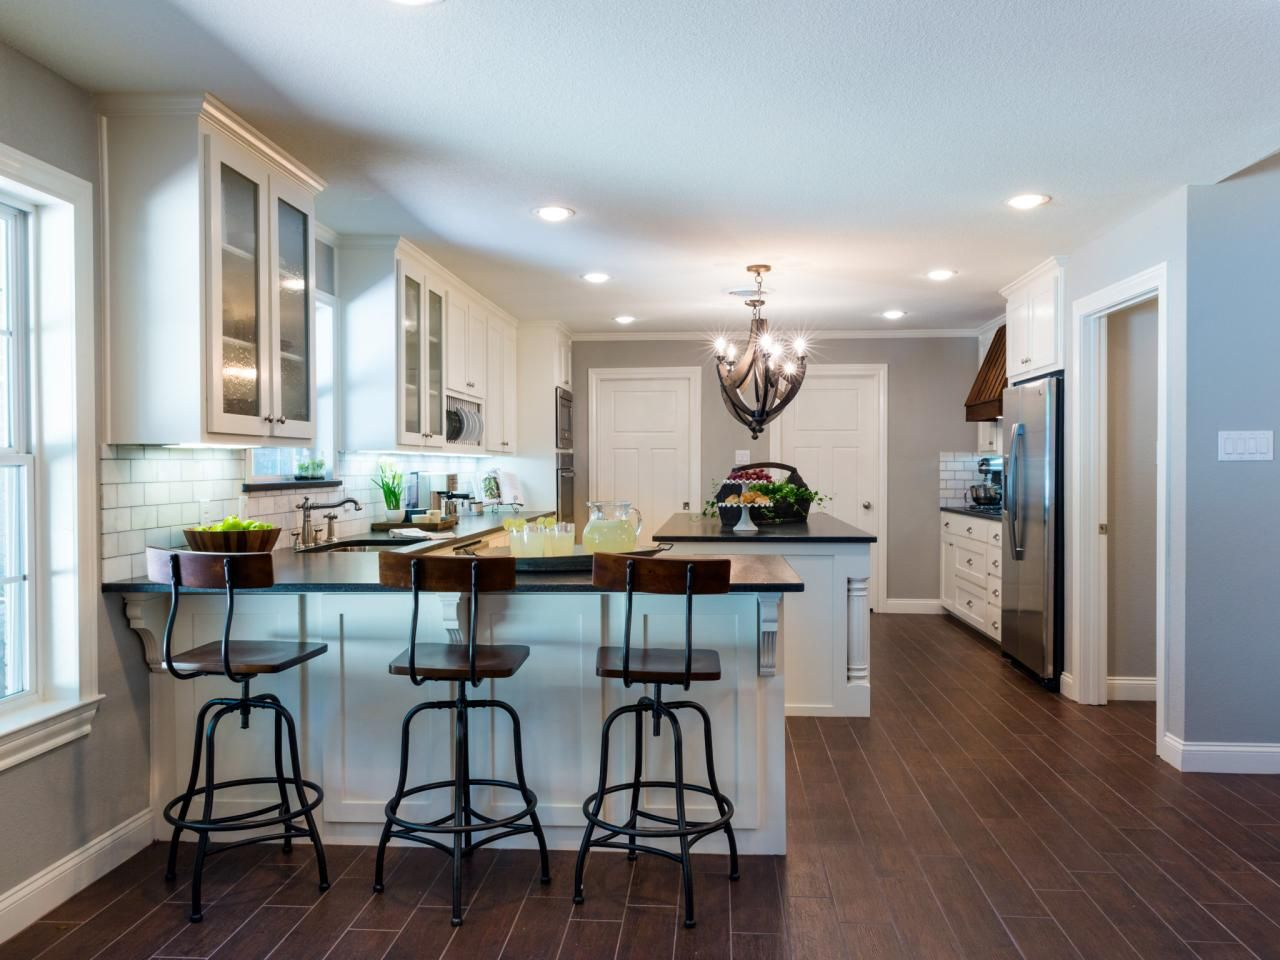 Fixer upper kitchen pendants - 1968 Fixer Upper In An Older Neighborhood Gets A Fresh Update